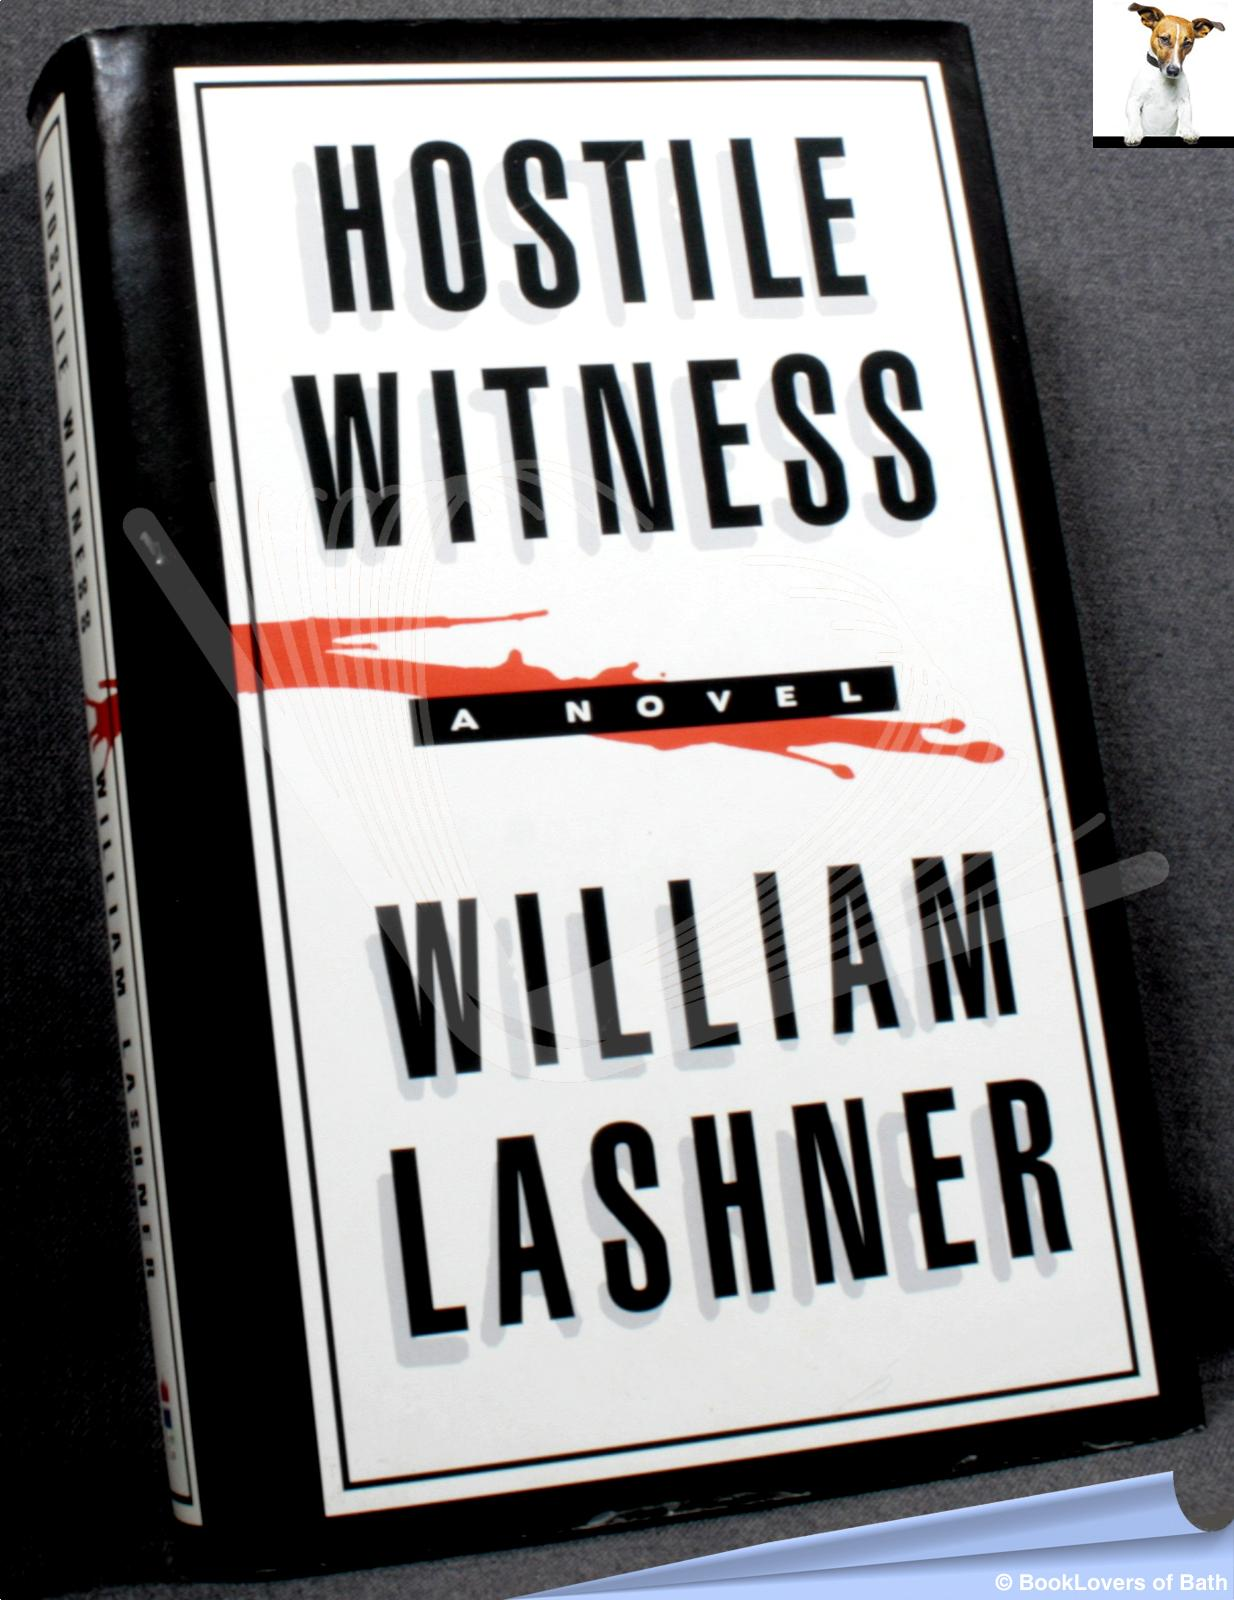 Hostile Witness - William Lashner